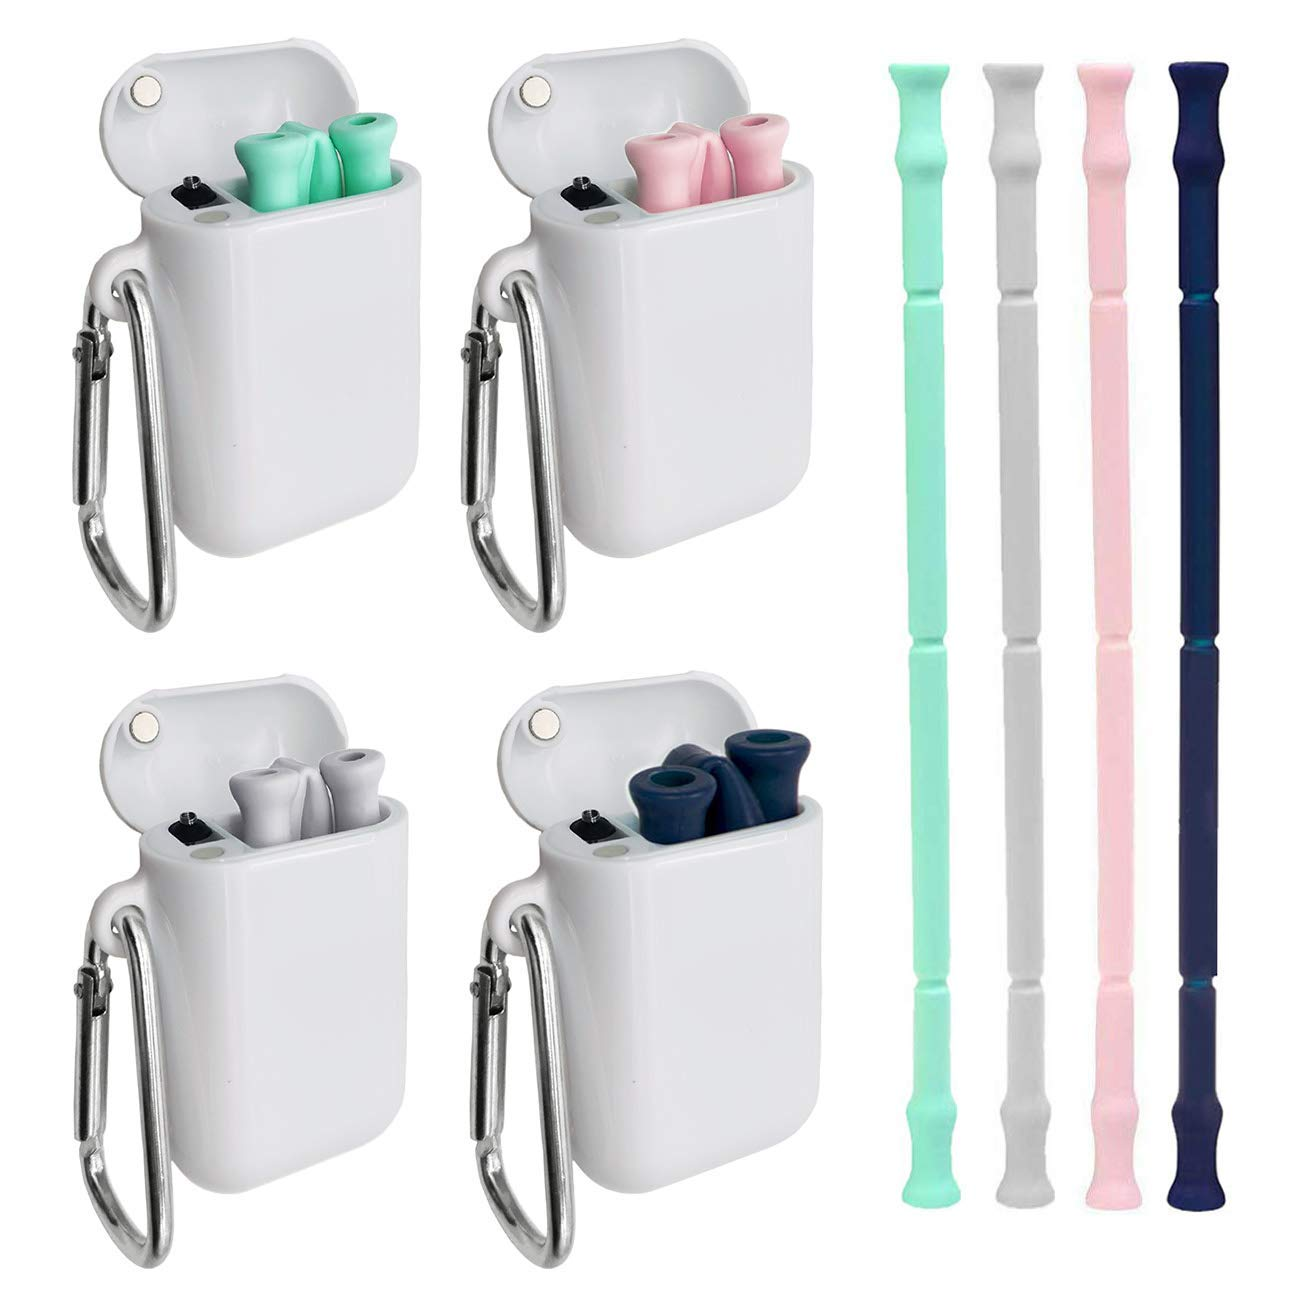 2 Pack Collapsible Straw Reusable Drinking Straws Stainless Steel Premium Food-grade Portable Straw Foldable Metal Straws with Case and Cleaning Brush & Keychain for Travel,Household,Outdoor